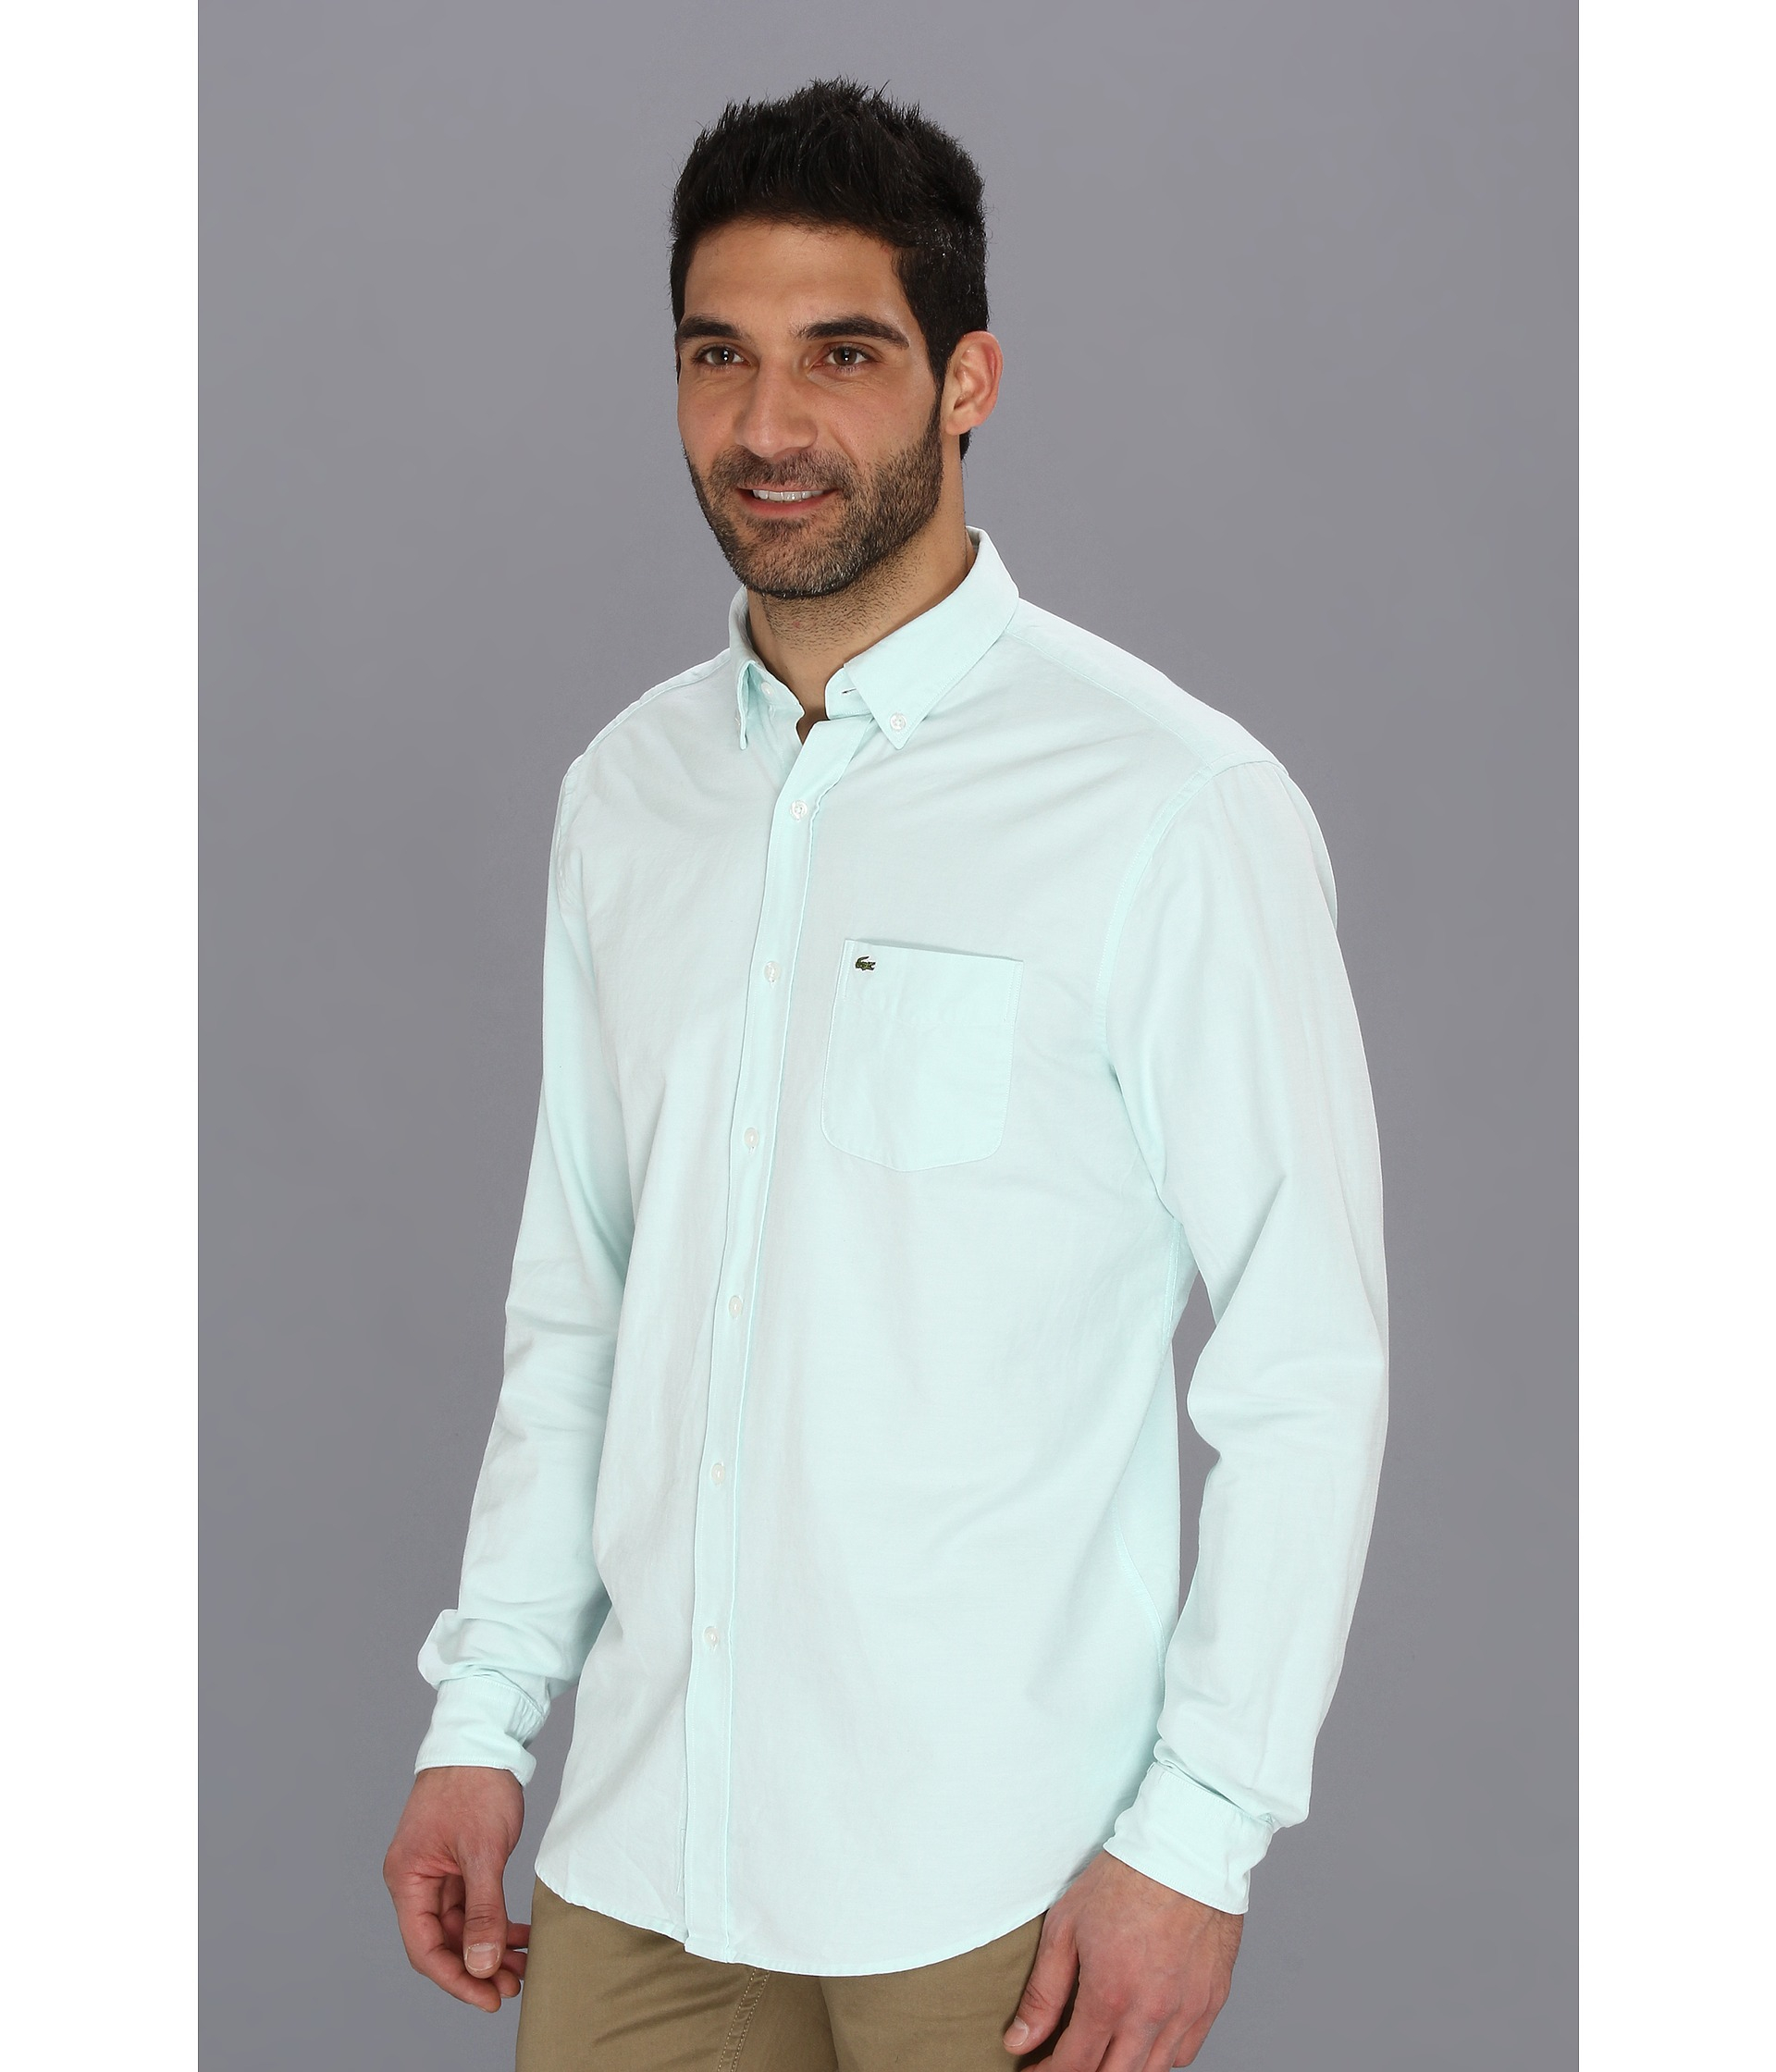 693c495a9 Lacoste Long Sleeve Washed Oxford Shirt With Button Down Collar ...